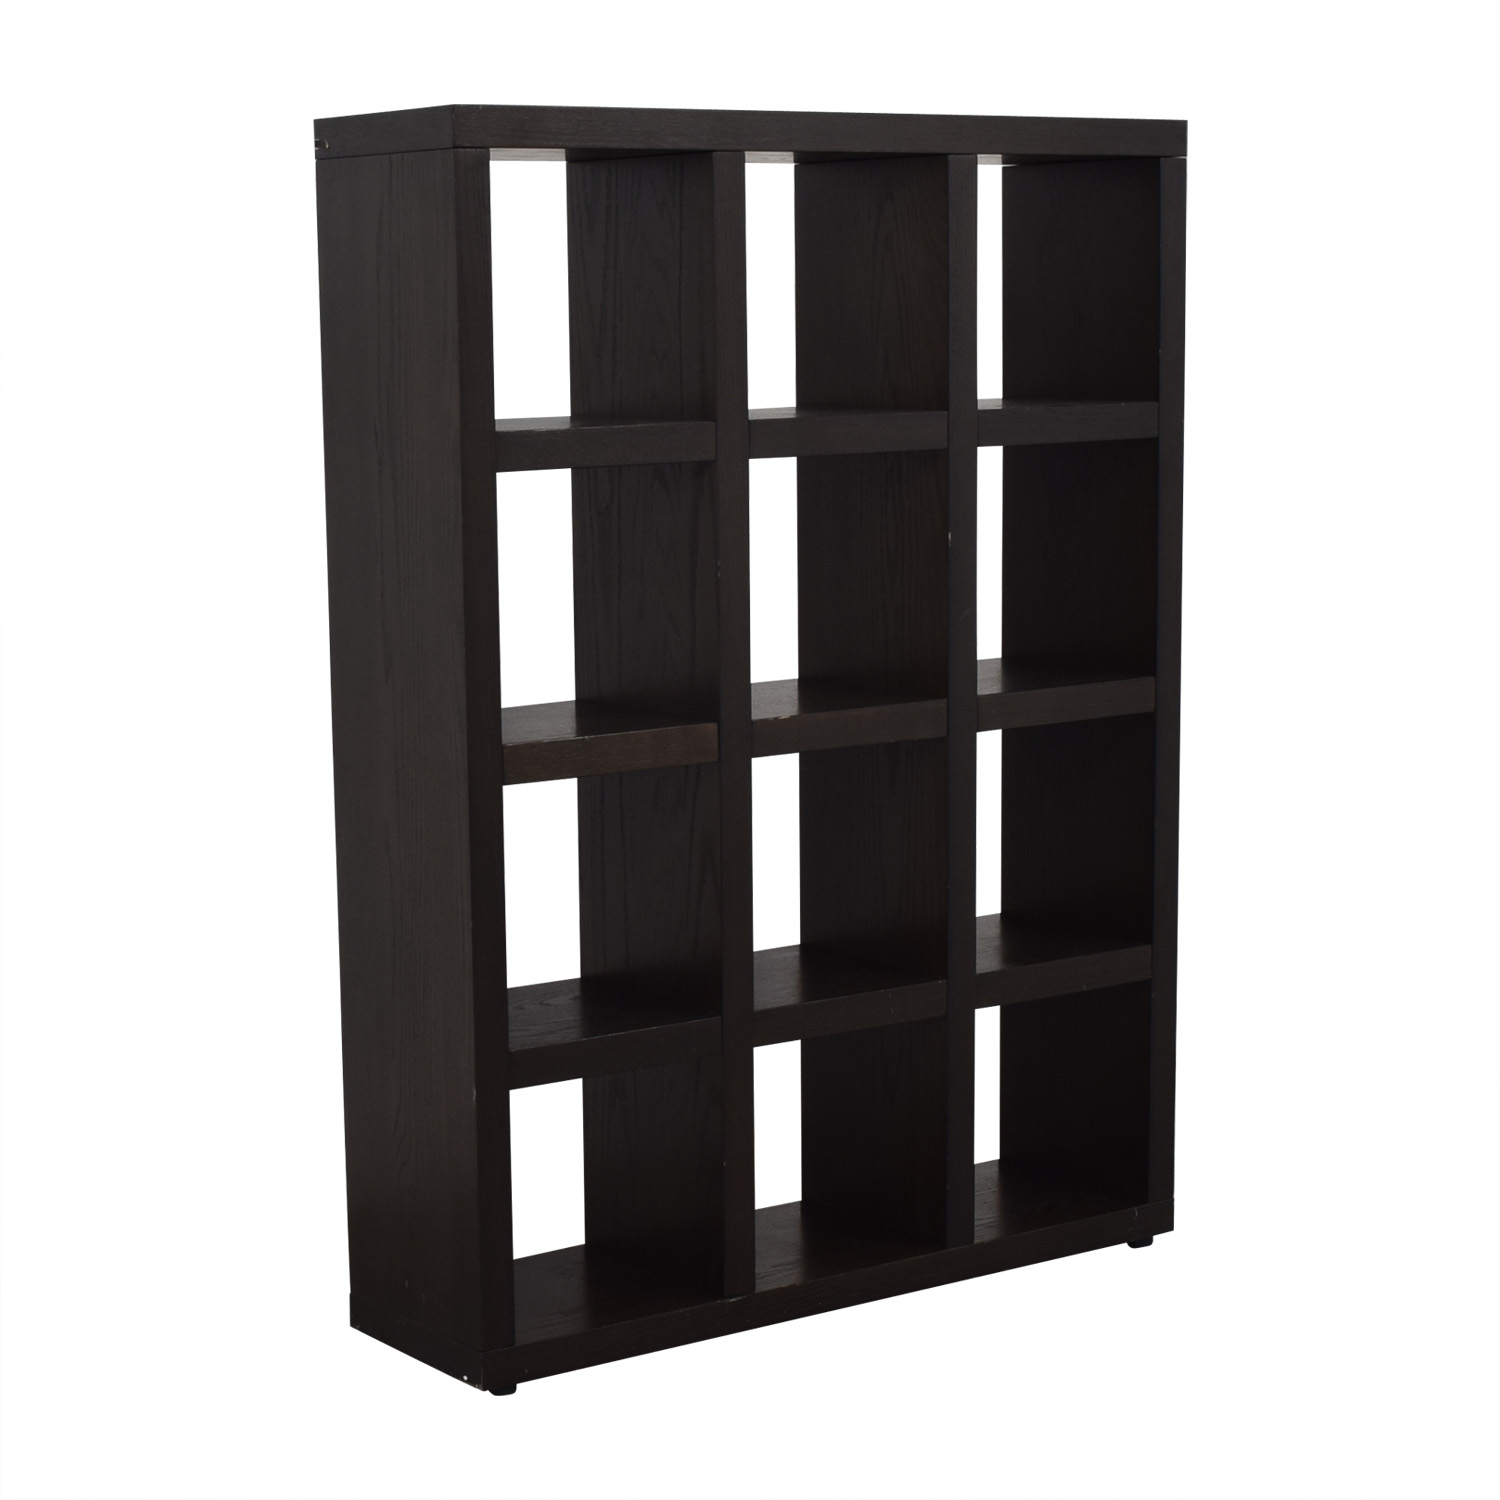 West Elm Tall Black Cube Bookshelf / Bookcases & Shelving